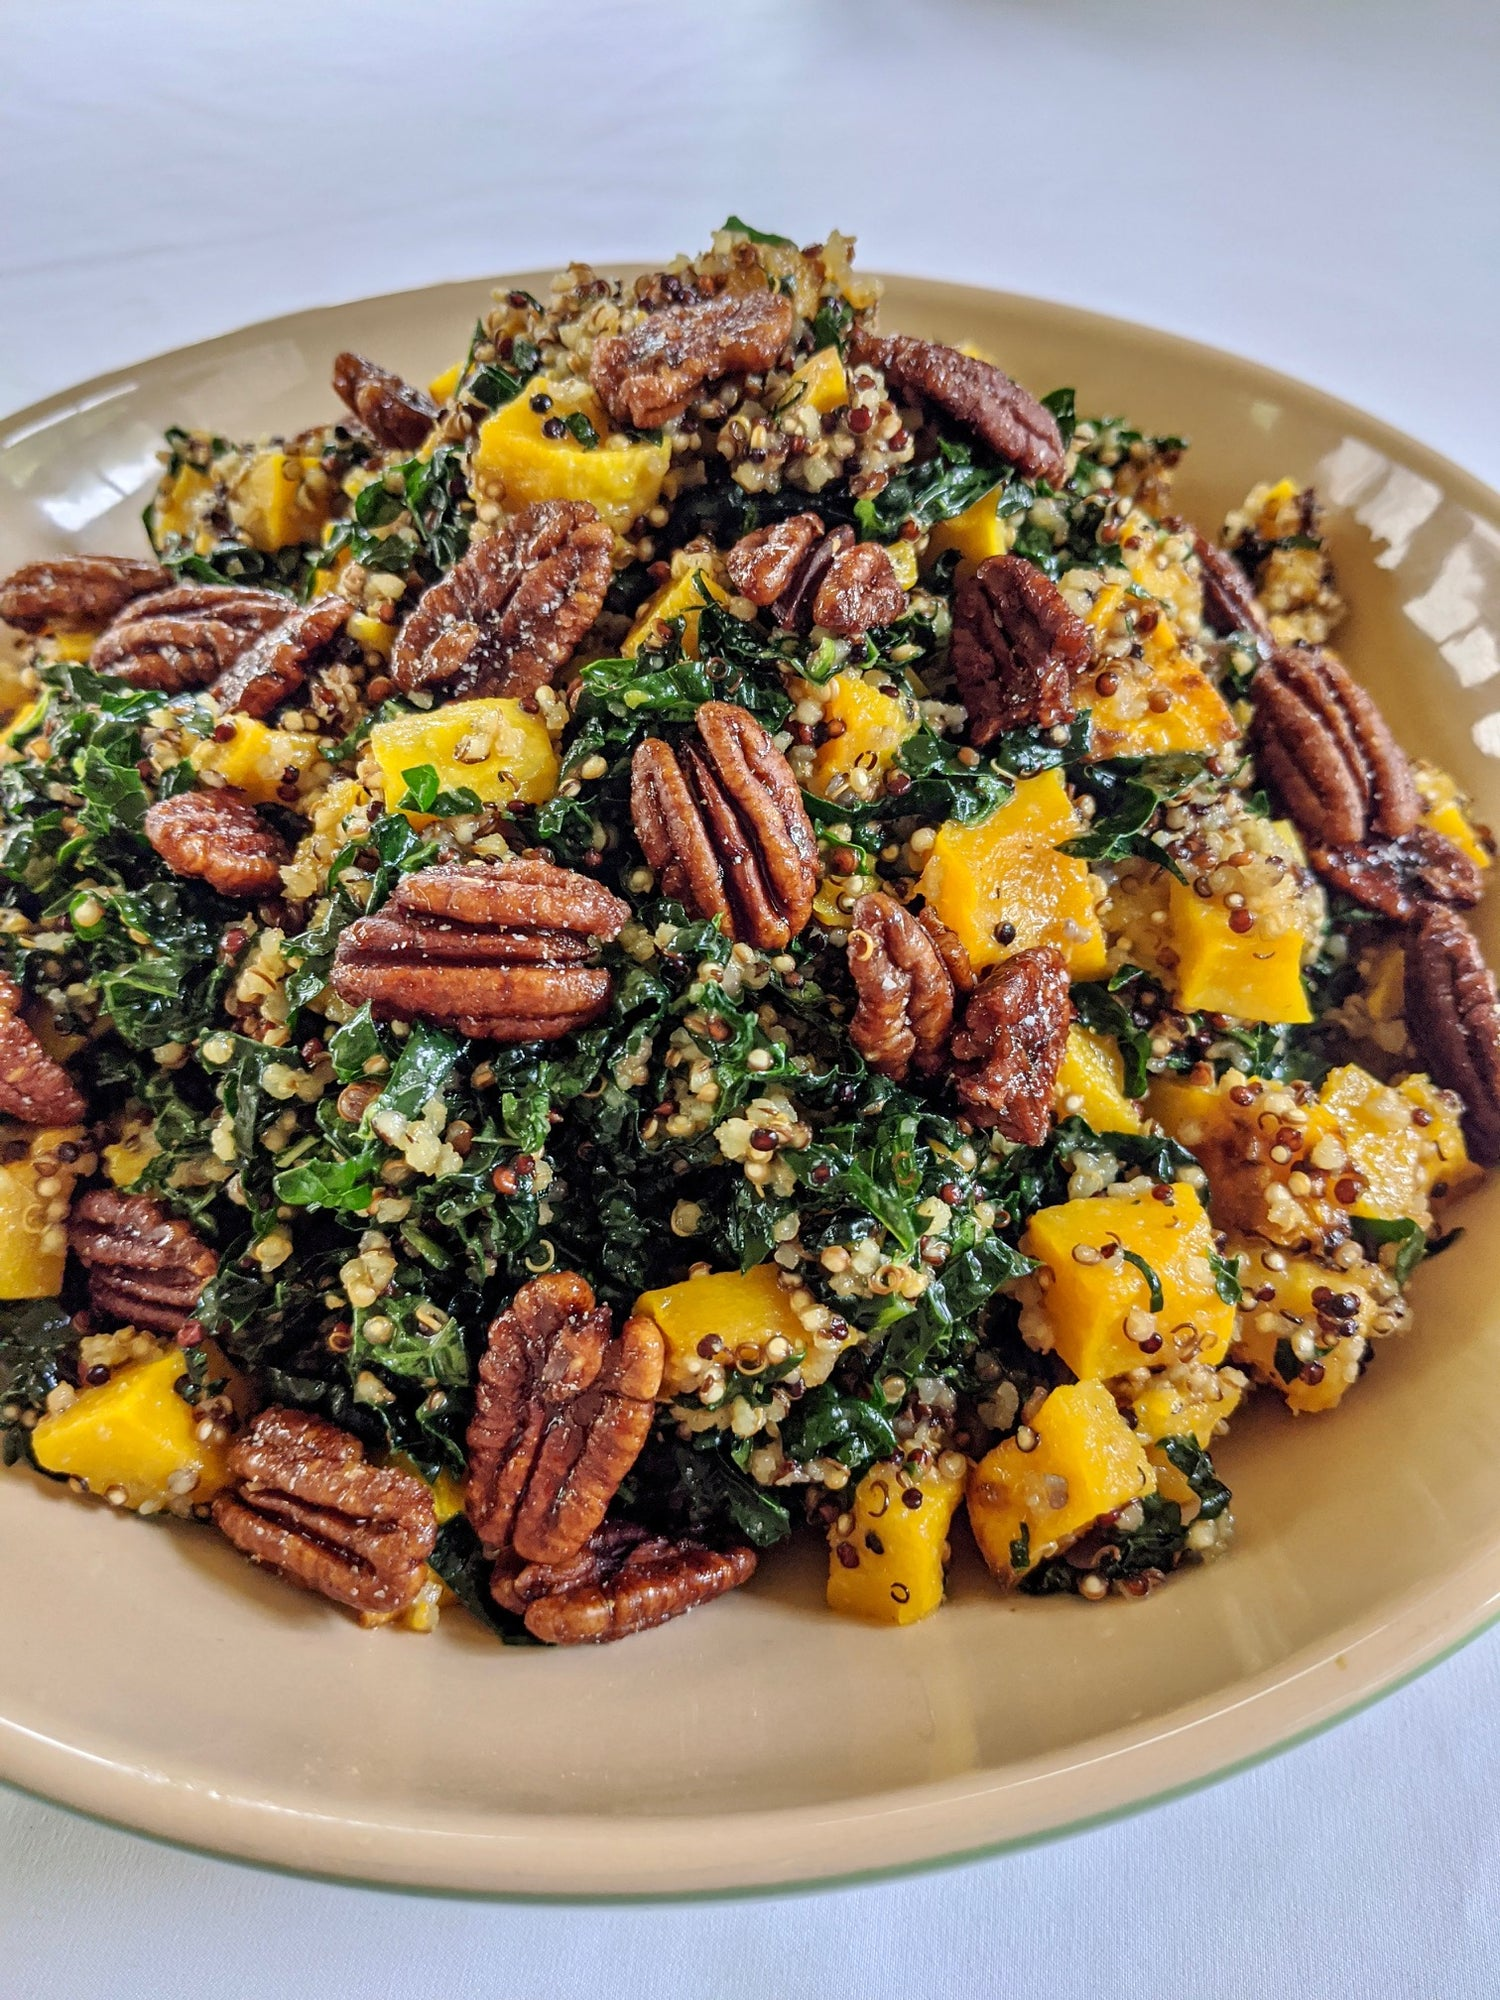 RECIPE: Nutkrack Kale Quinoa Salad with Roasted Butternut Squash